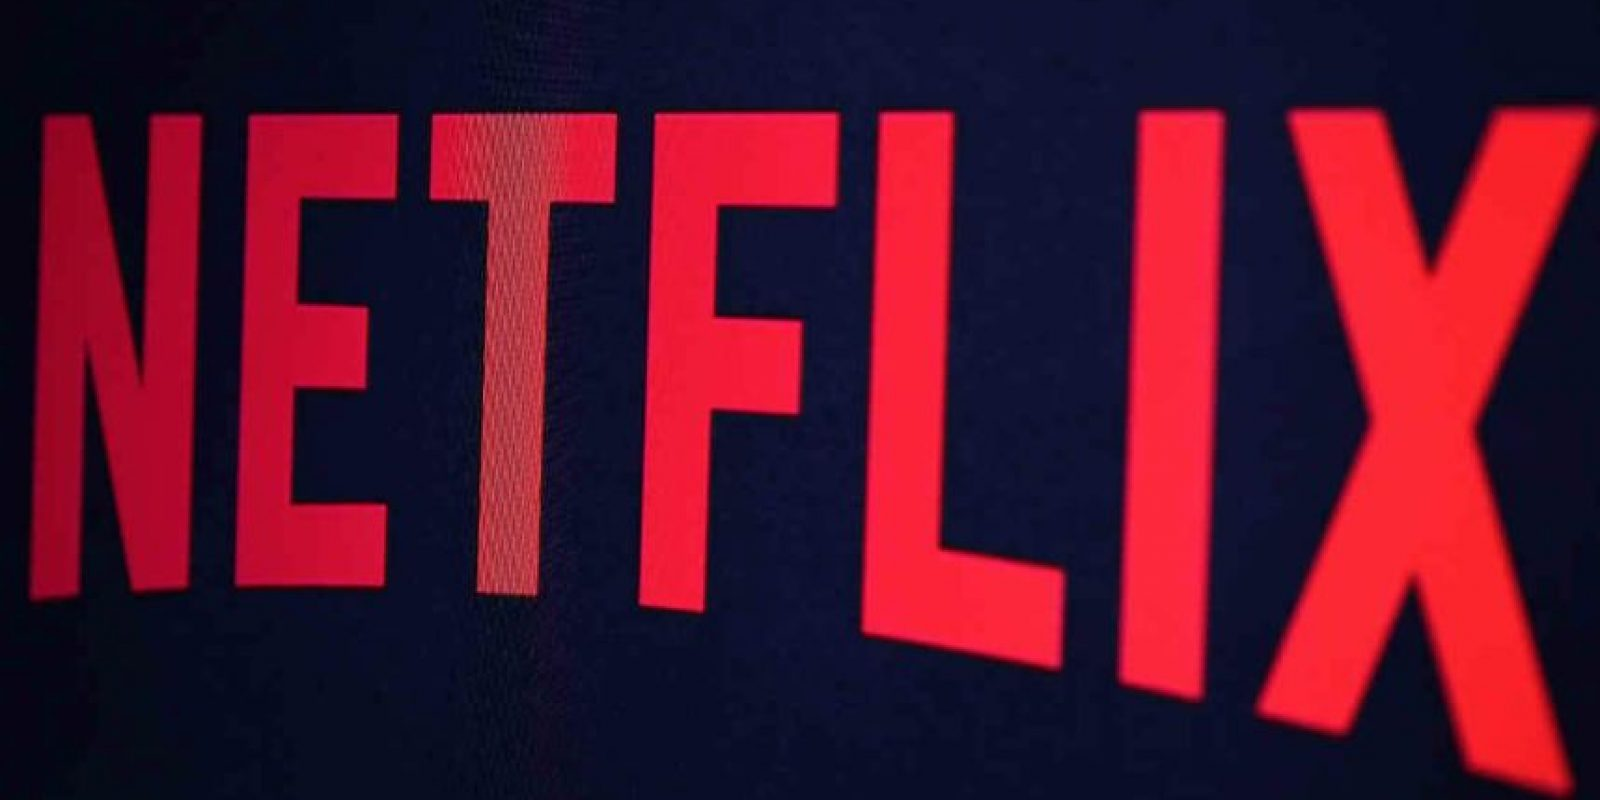 Blockbuster rechazó comprar Netflix por un cuarto de su valor actual. Foto: Getty Images